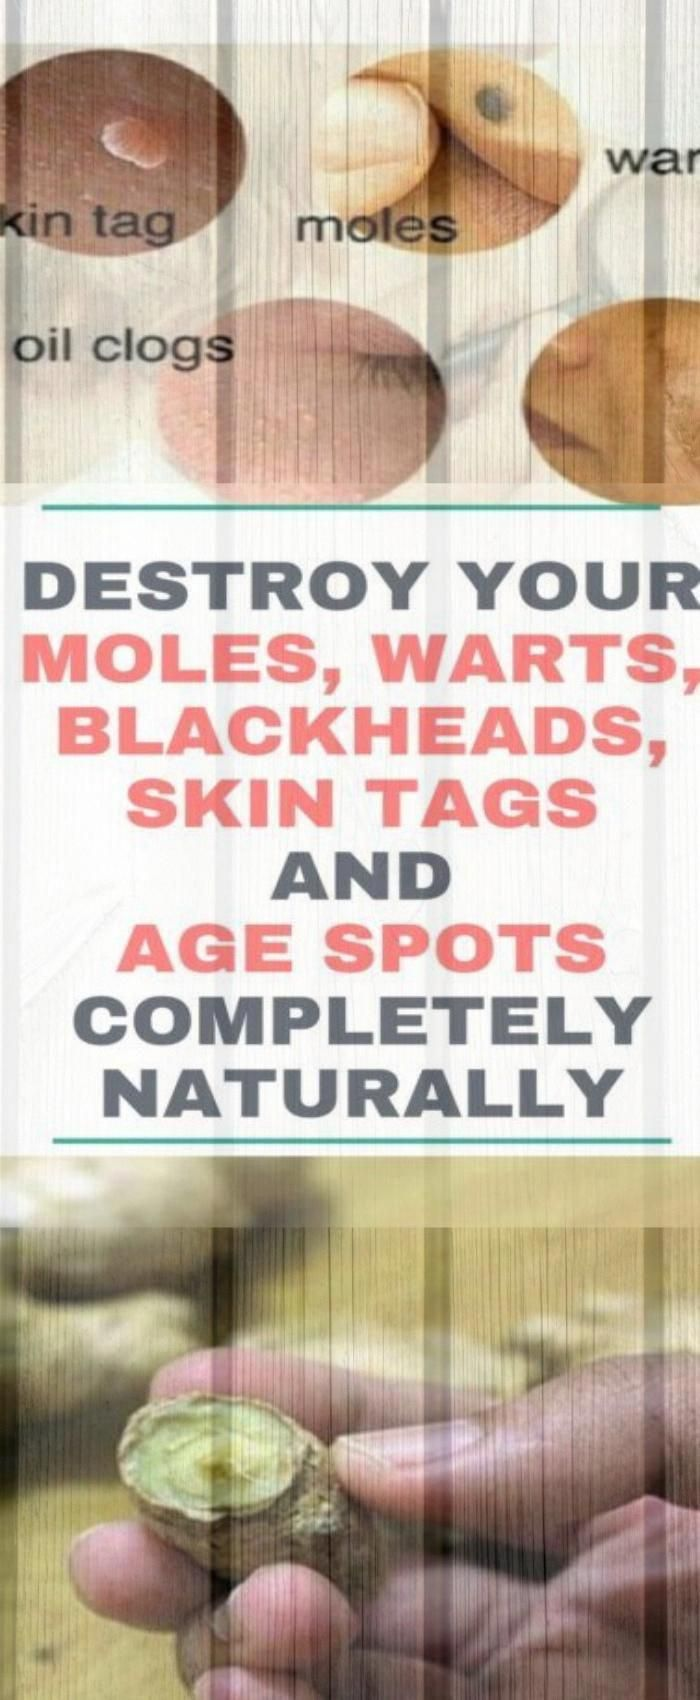 Destroy You Moles, Warts, Blackheads, Skin Tags & Age Spots Completely Naturally #Destroy #You #Mole...